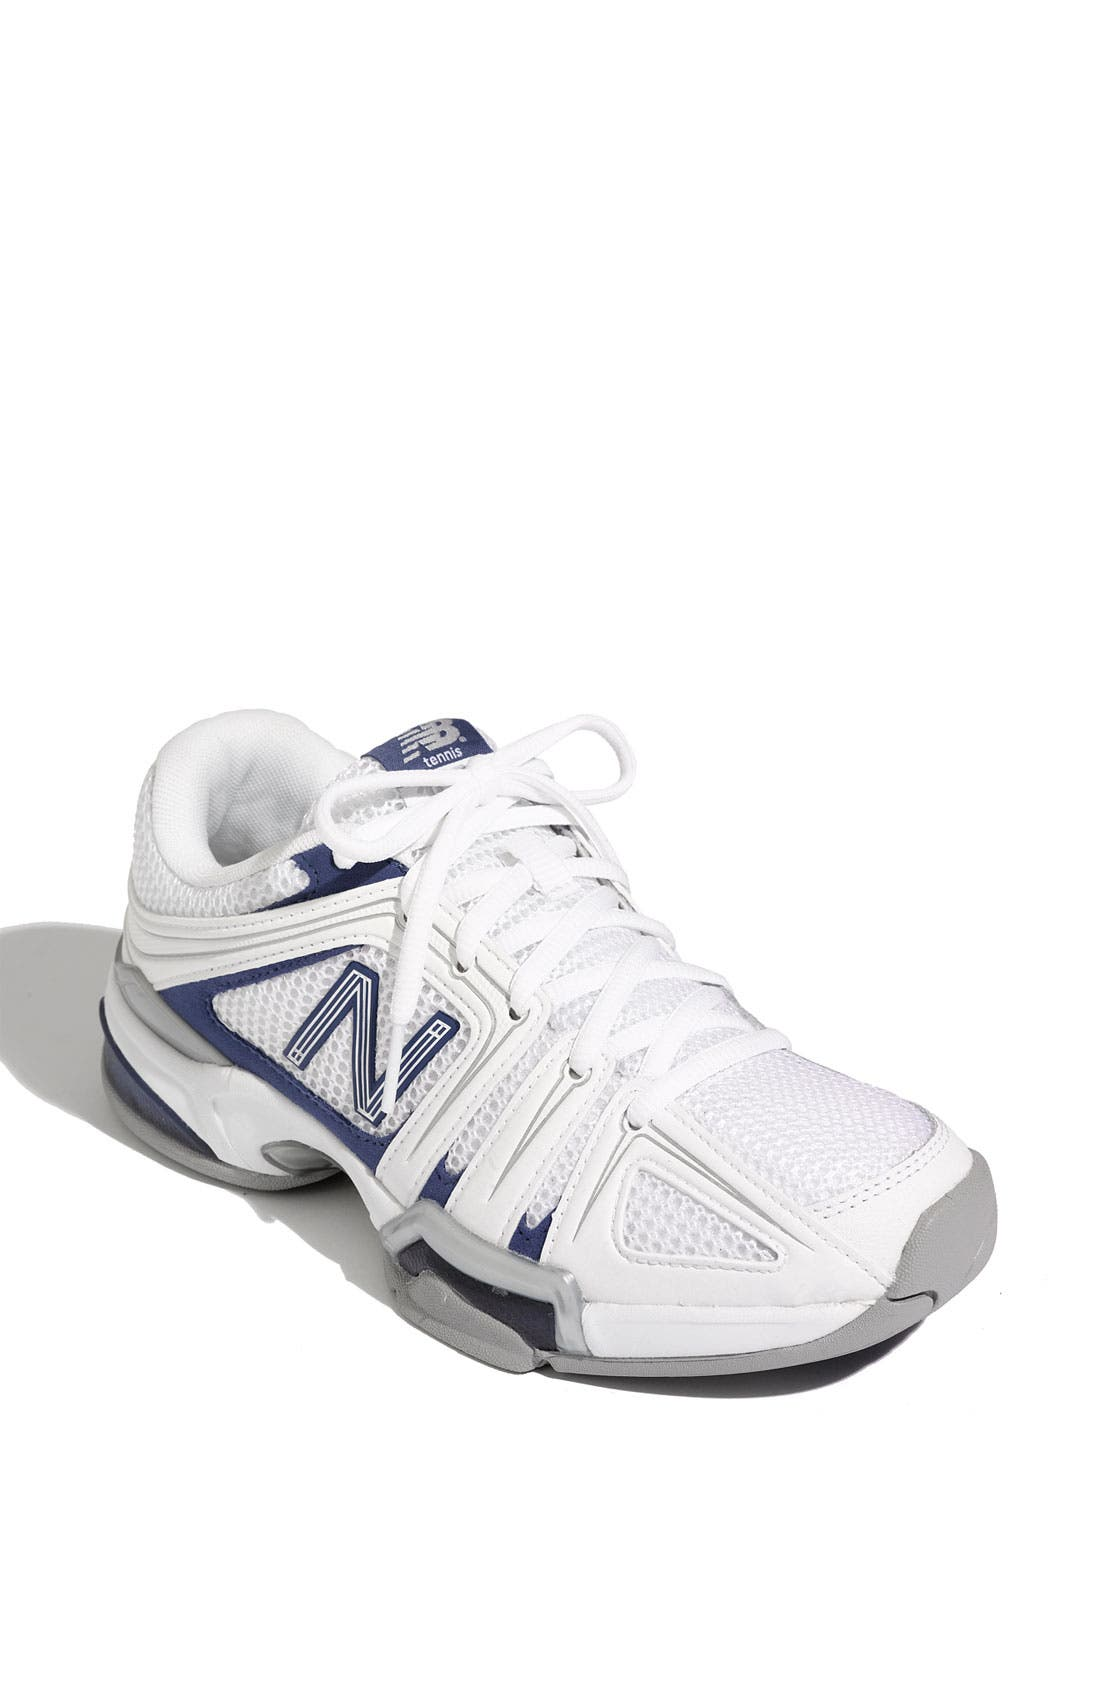 Alternate Image 1 Selected - New Balance '1005' Tennis Shoe (Women)(Retail Price: $114.95)